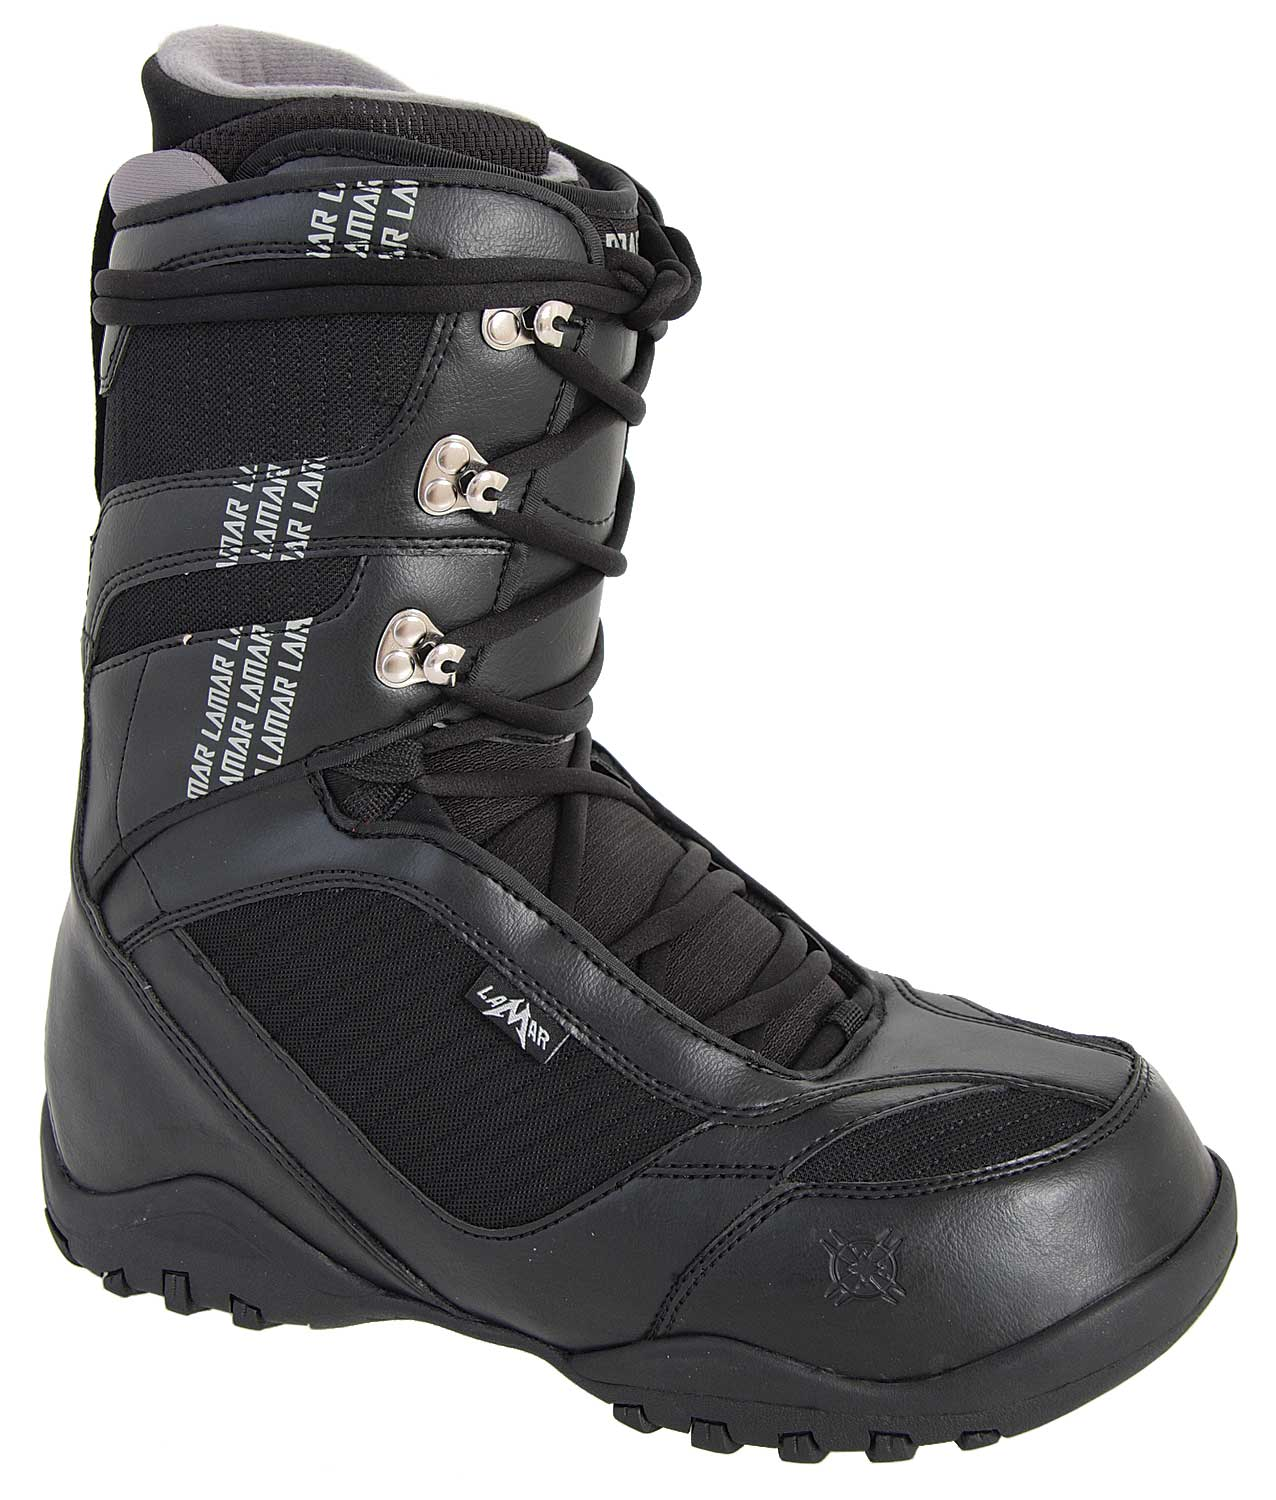 Snowboard Showcasing the state of the art in snowboard boot design, the Lamar Justice 2 Snowboard Boots Black are designed with micro-injected pull-tabs in the tongue gusset, as well as soft-touch lacing for convenience. Designed with both comfort and performance in mind, these boots will keep you dry and warm on the slopes. The durability of these boots cannot be beat, and when you buy Lamar Justice boots, you can rest assured that you are getting comfortable, effective snowboard boots proven to maximize performance and comfort.Key Features of The Lamar Justice Snowboard Boots: PL Articulated Lace Up Liner with EVA Footbed Low Profile Dual Density Outsole Soft Touch Lacing Tongue Gusset with Micro Injected Pull Tab Flex Zone Tongue Upgraded Materials - $59.95